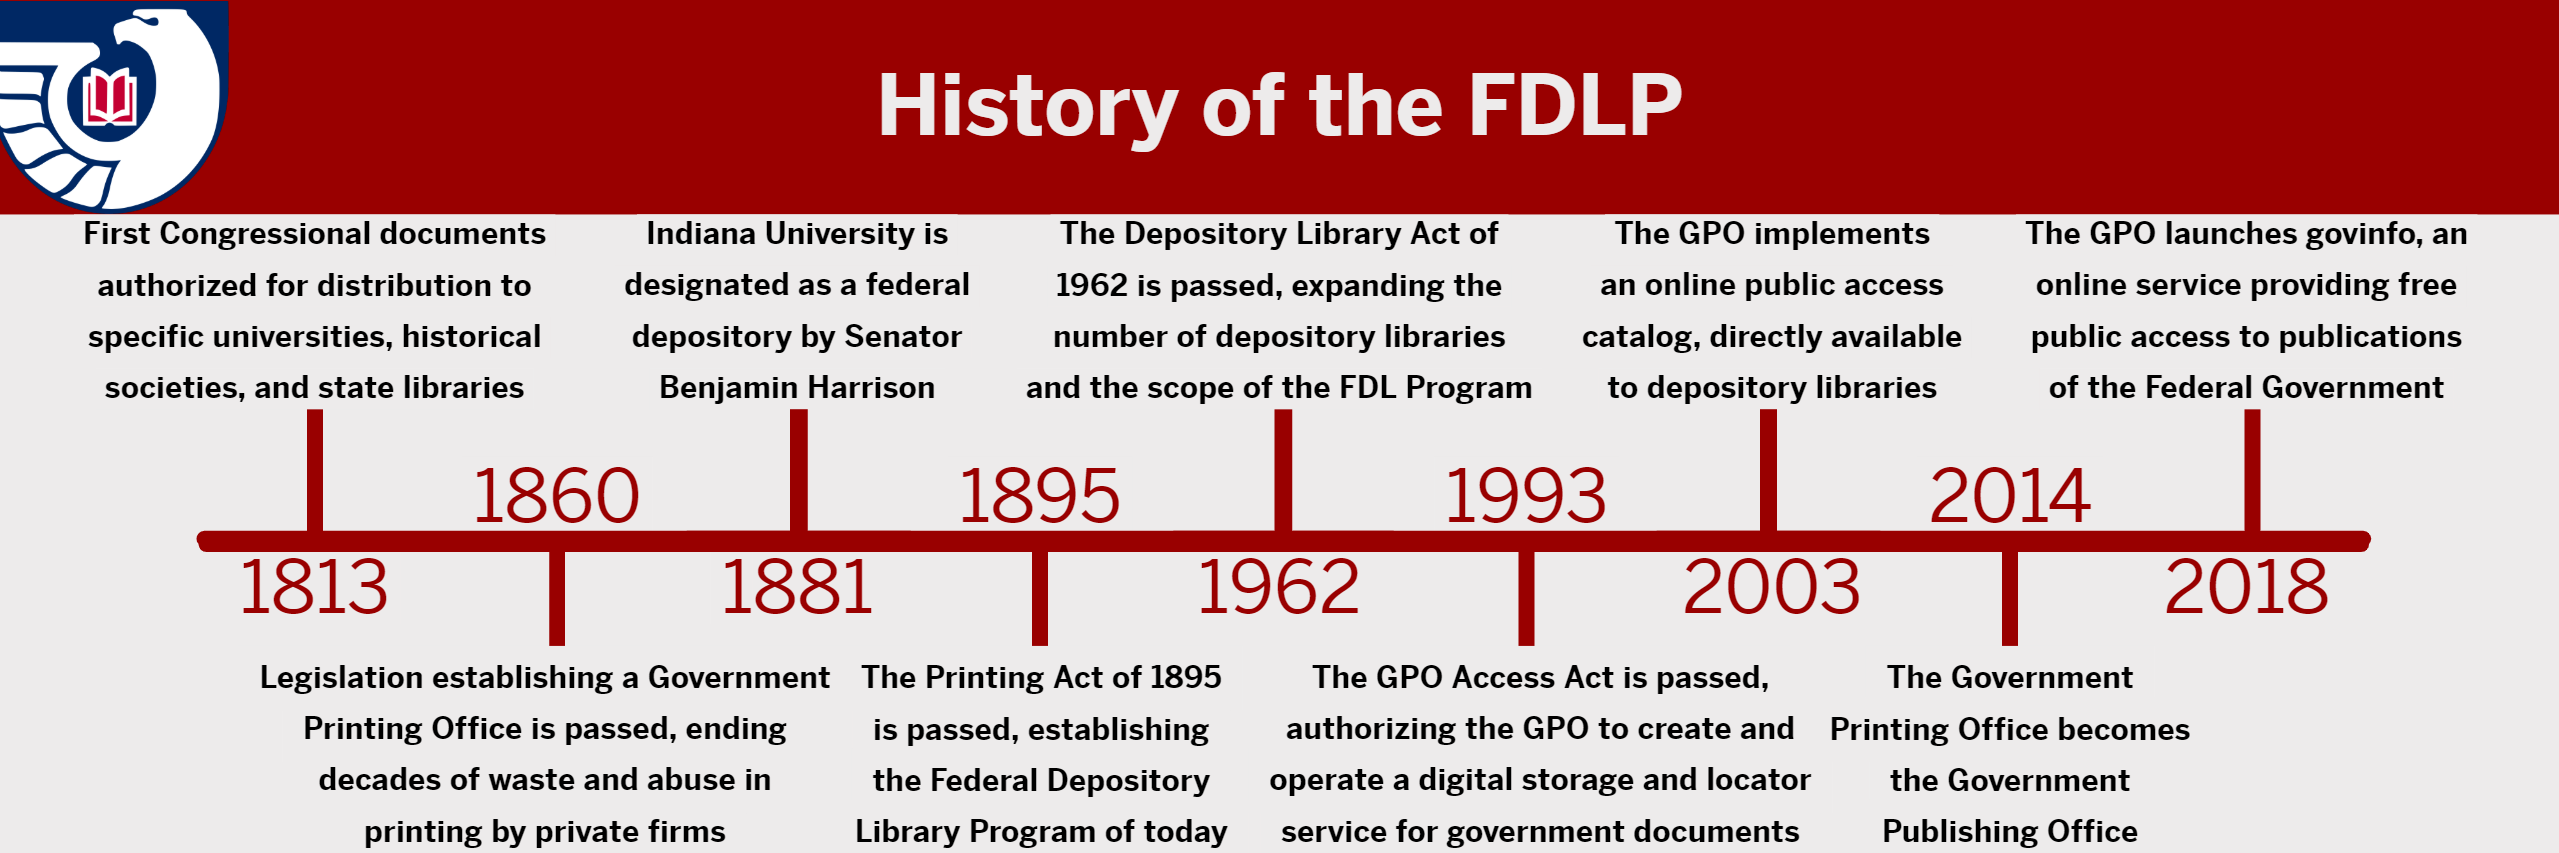 Timeline showing important historical dates and events for the Federal Depository Library Program